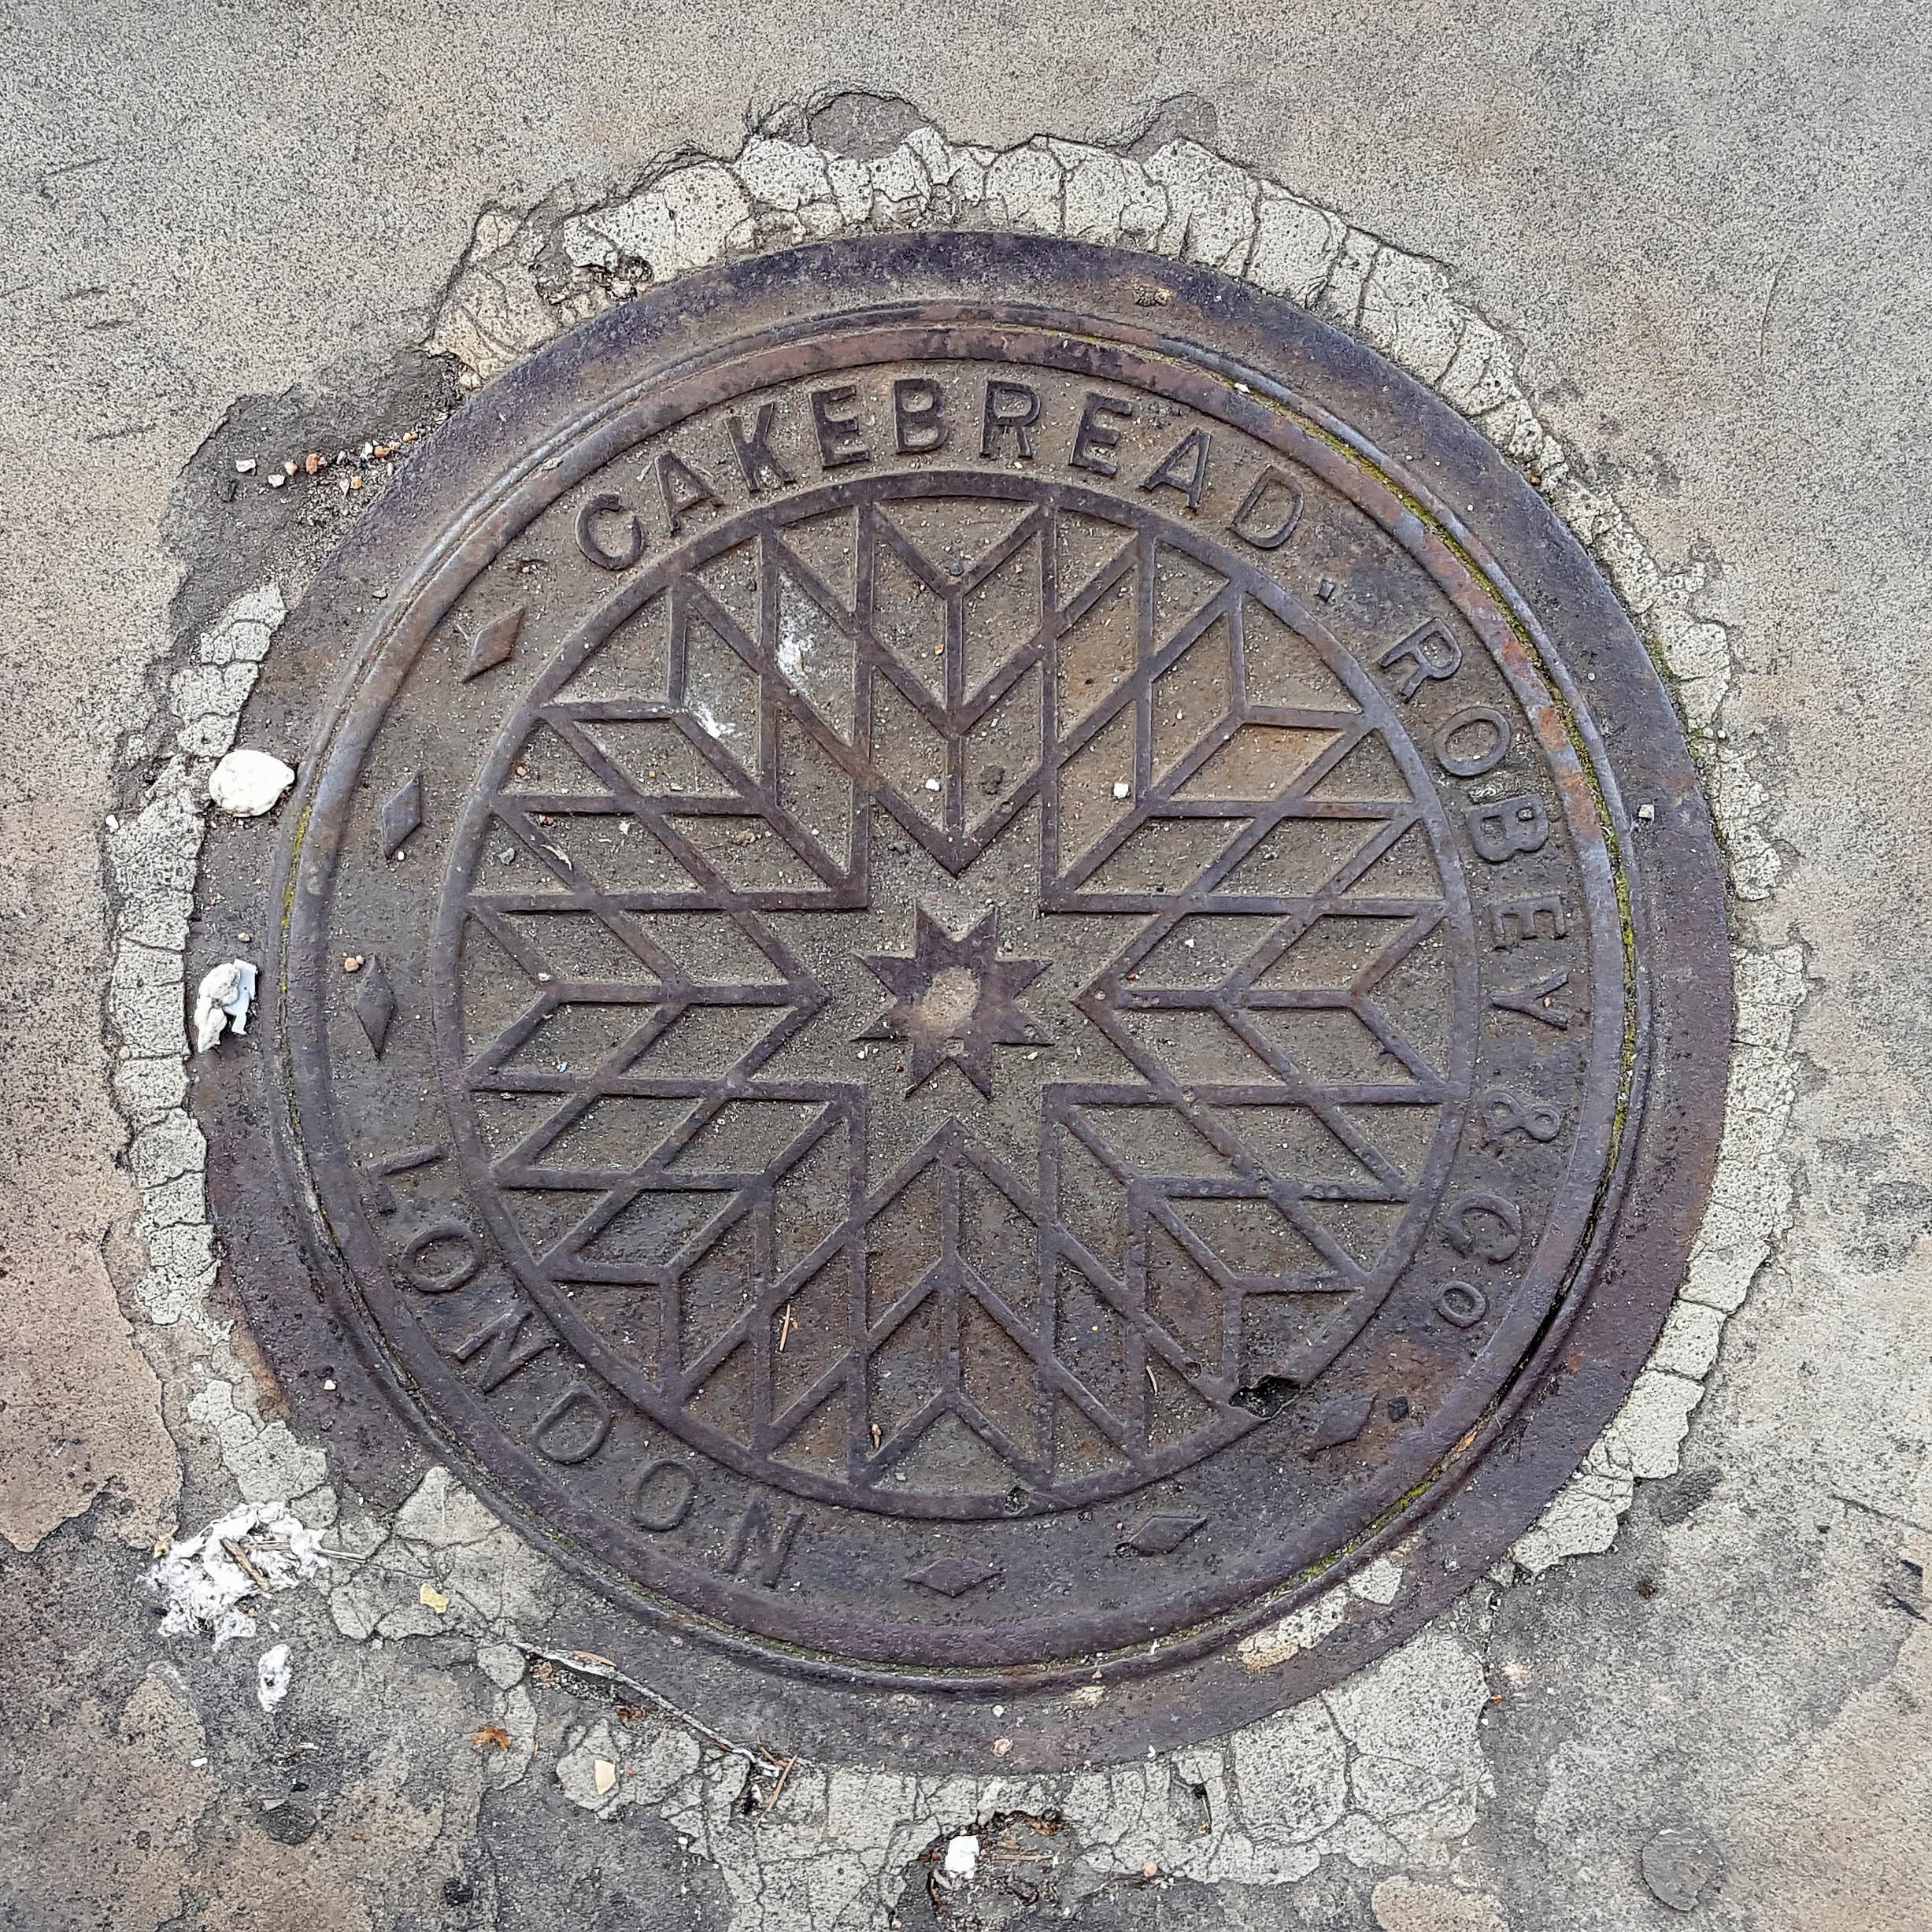 Manhole Cover, London - Cast iron with geometric star pattern - inscribed with Cakebread Robey & Co  London